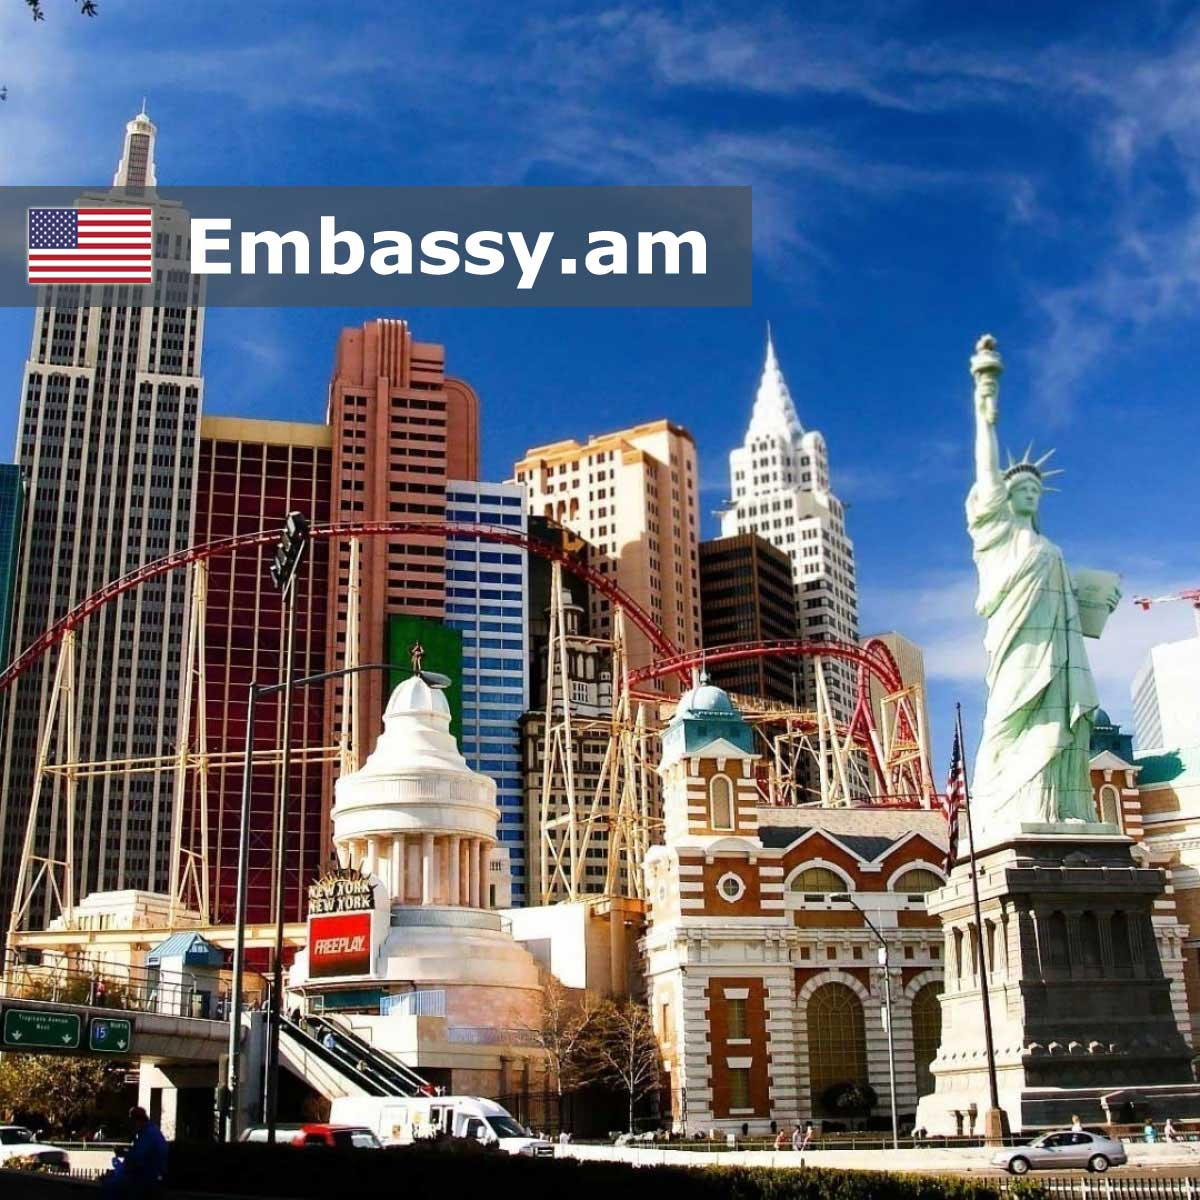 Las Vegas - Hotels in United States of America - Embassy.am